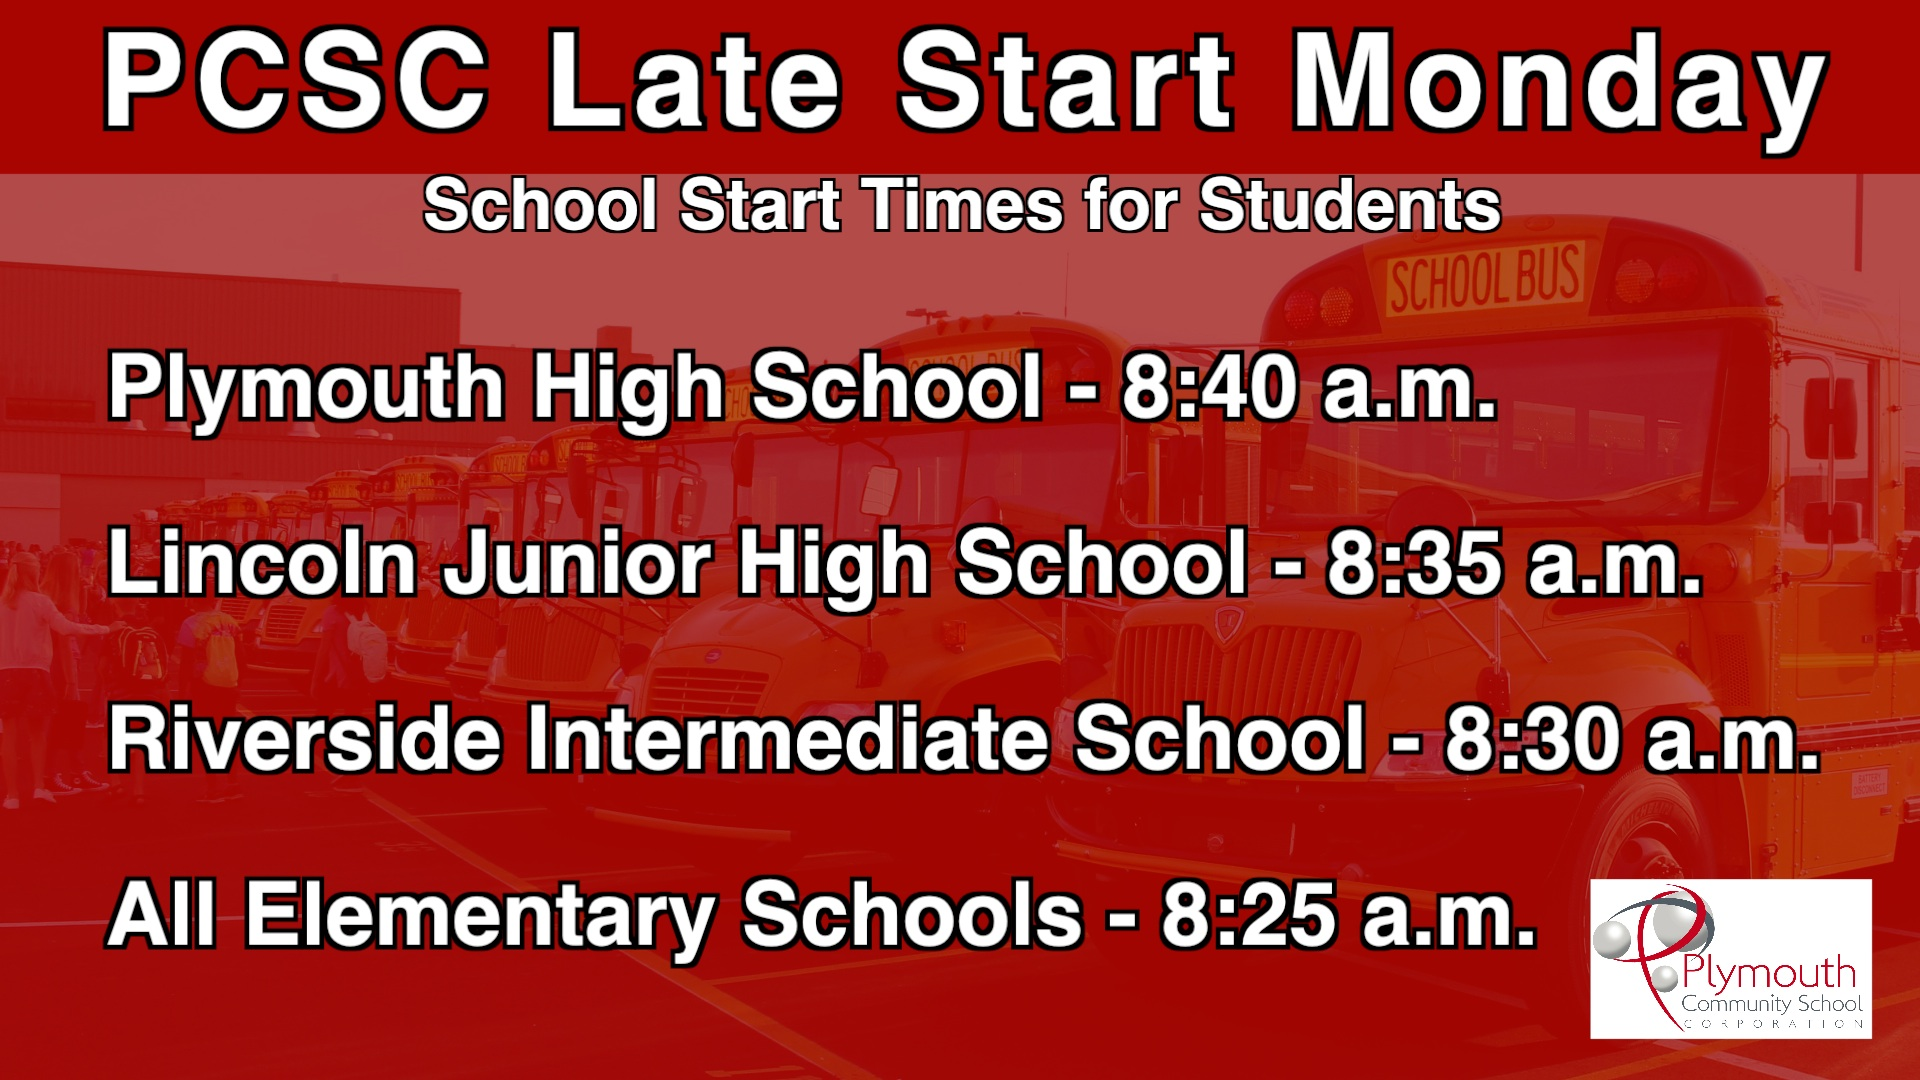 PCSC Late Start Mondays Information